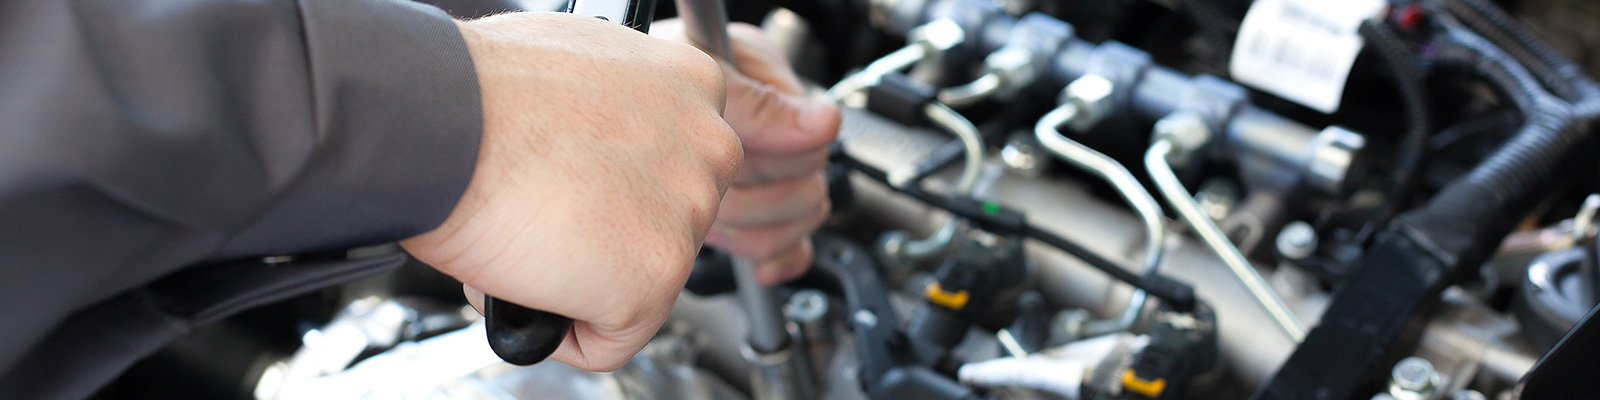 All-Pro Auto Repair & Maintenance Services